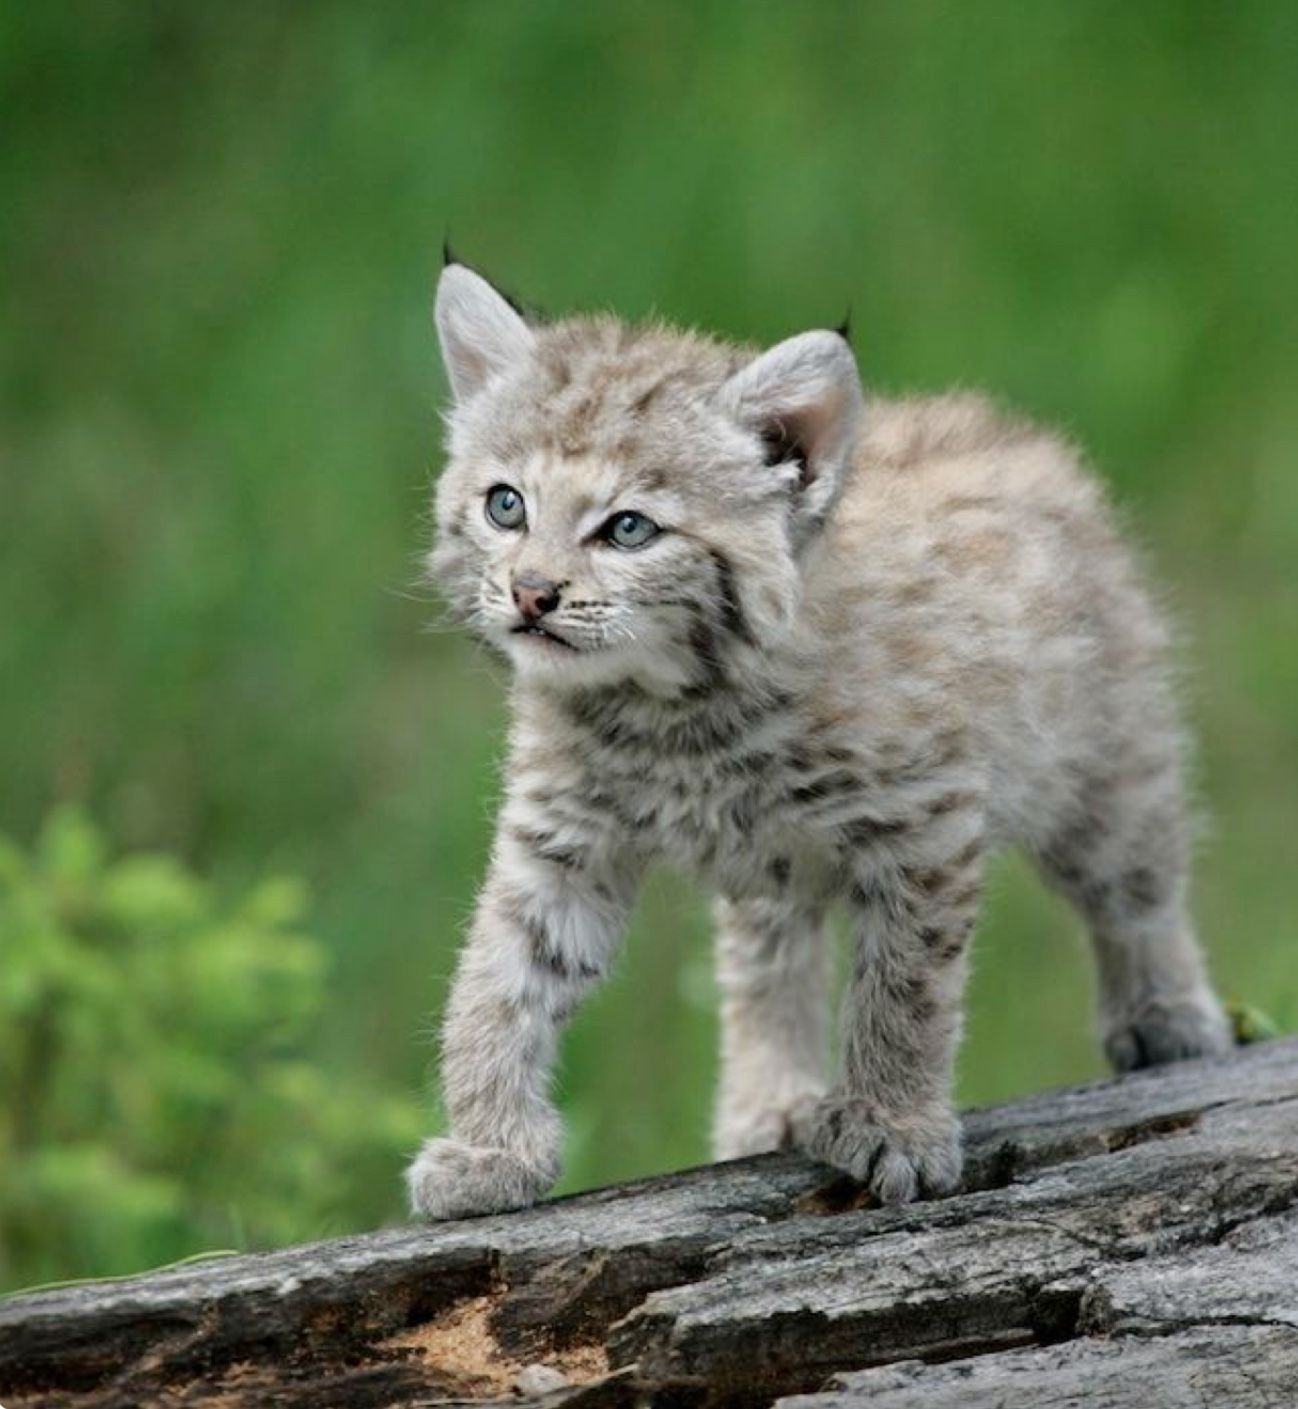 Tiny Fluffy Bobcat Kitten Just Too Cute For Words Cats Baby Bobcat Cute Animals